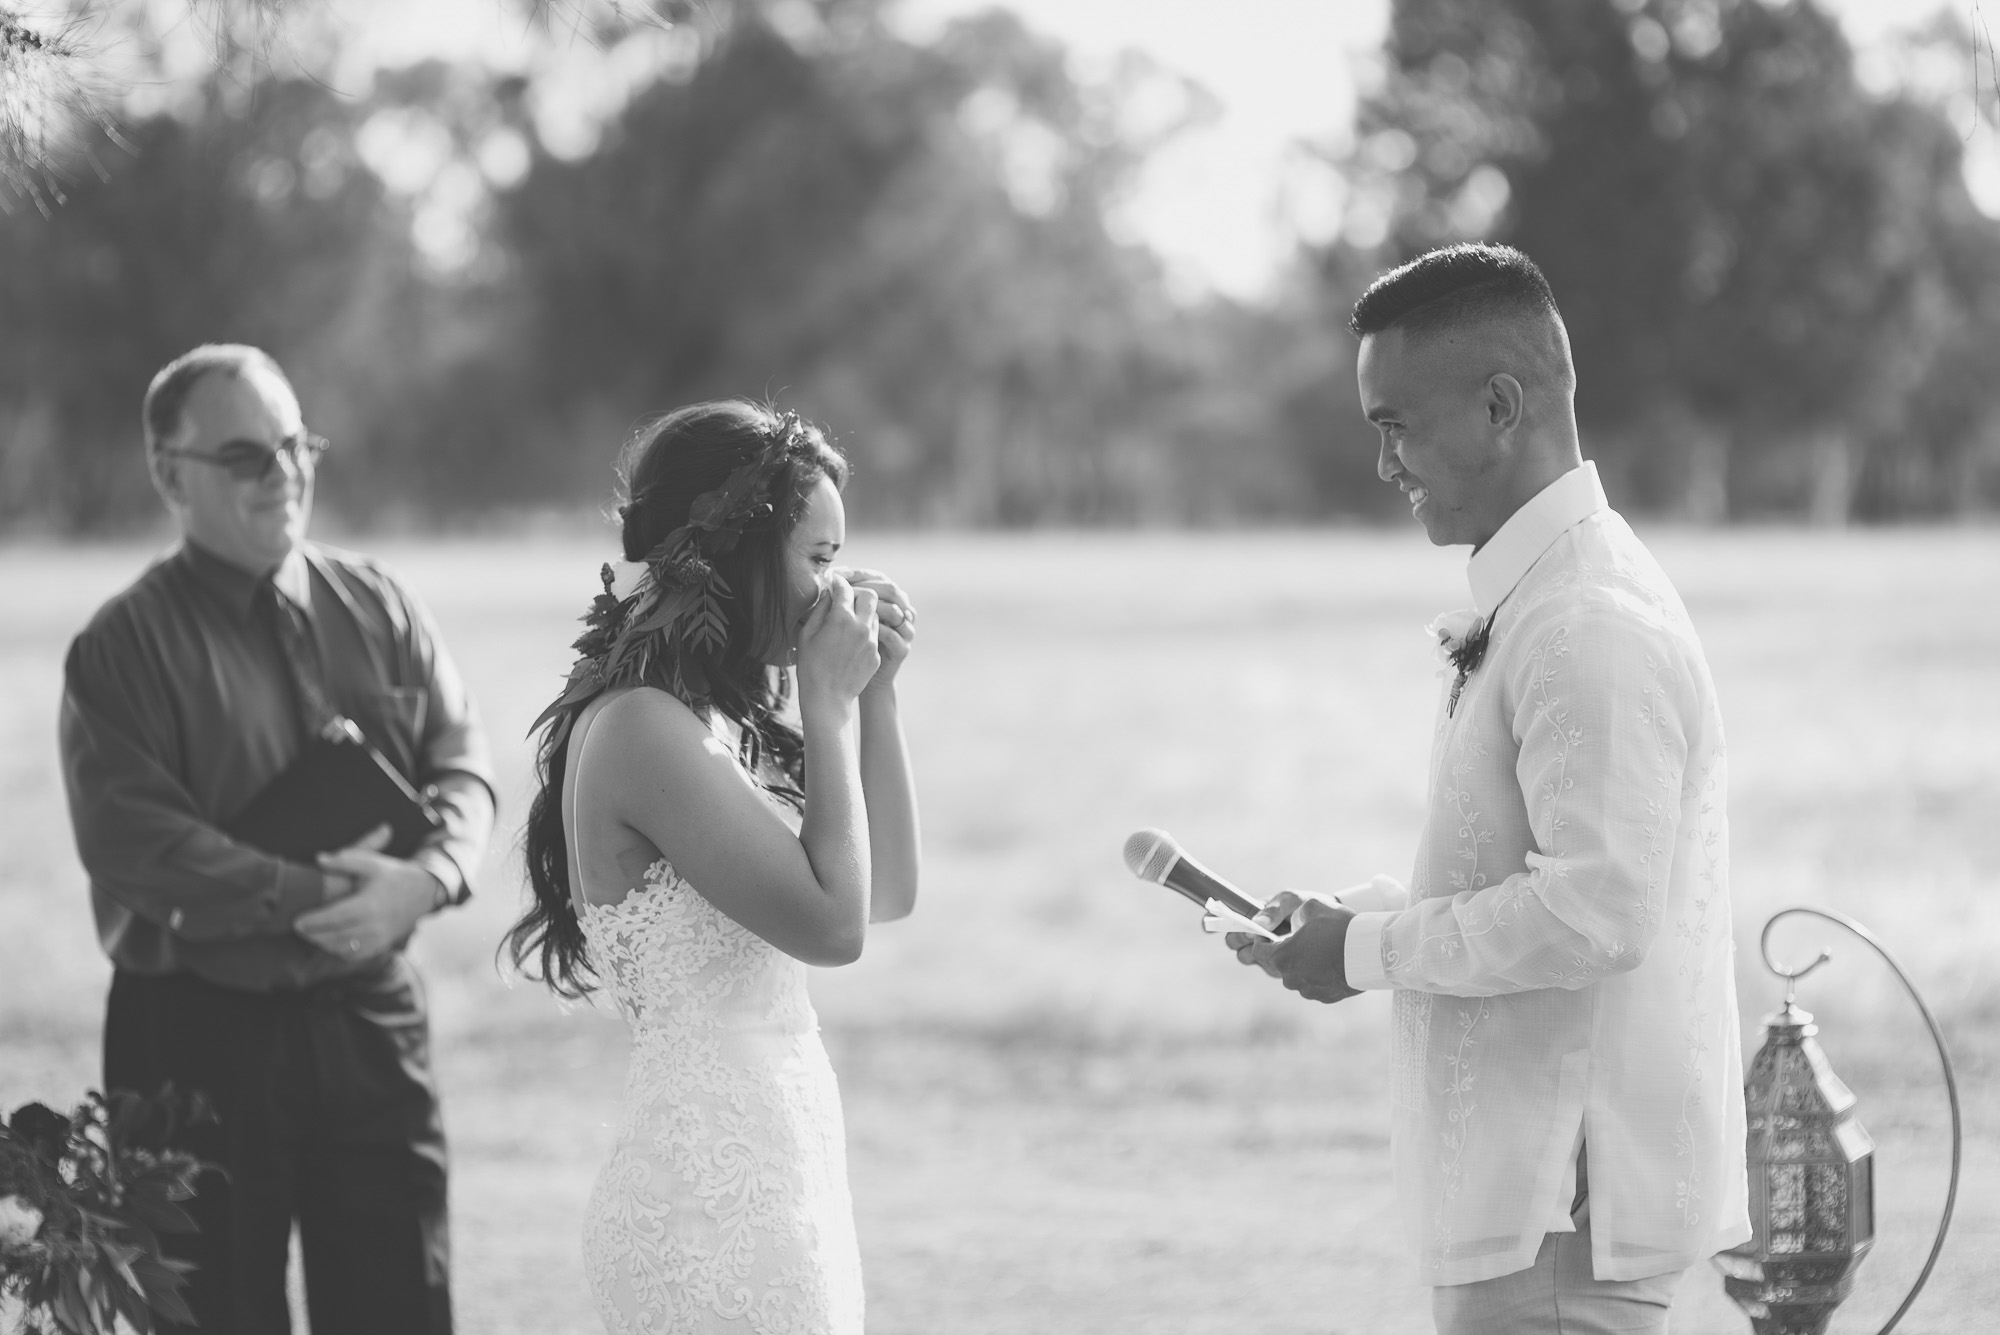 wedding-photographer-outdoor-casual-styled-los-angeles-australia-california-international-earthbound -39.jpg